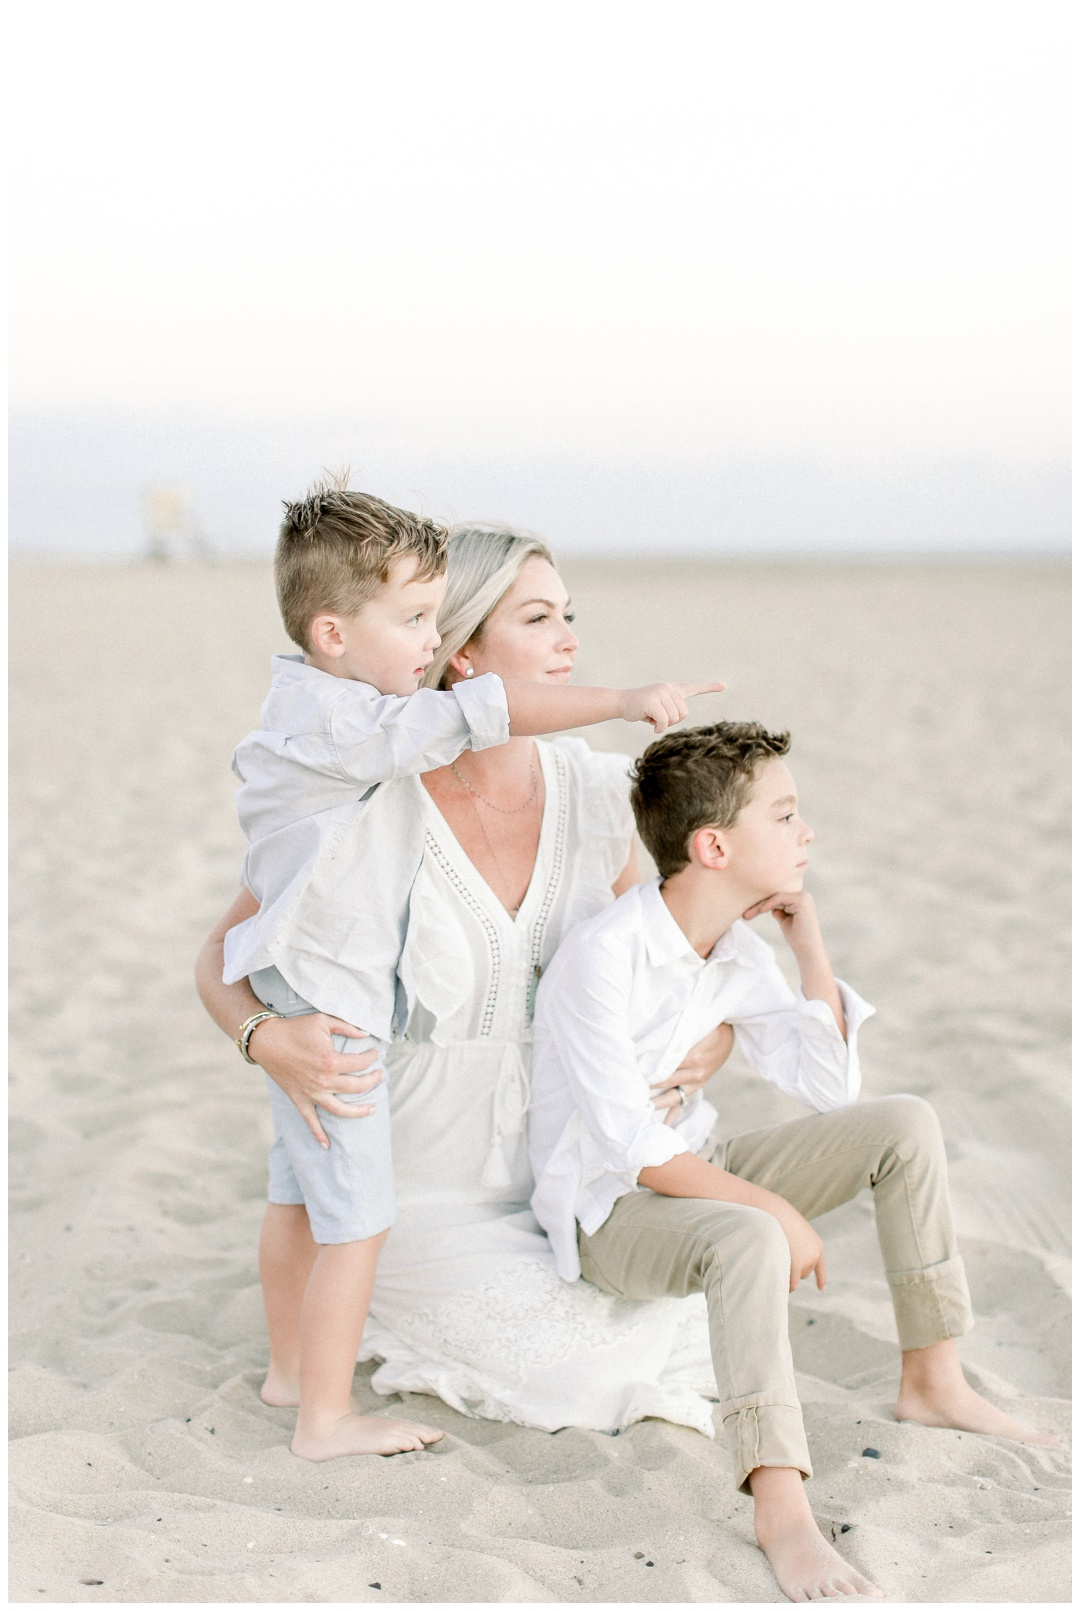 Newport_Beach_Family_Photographer_Newport_Beach_Newborn_Photographer_Orange_County_Family_Photographer_Cori_Kleckner_Photography_Huntington_Beach_San_Clemente_Family_Session_Photography__2364.jpg